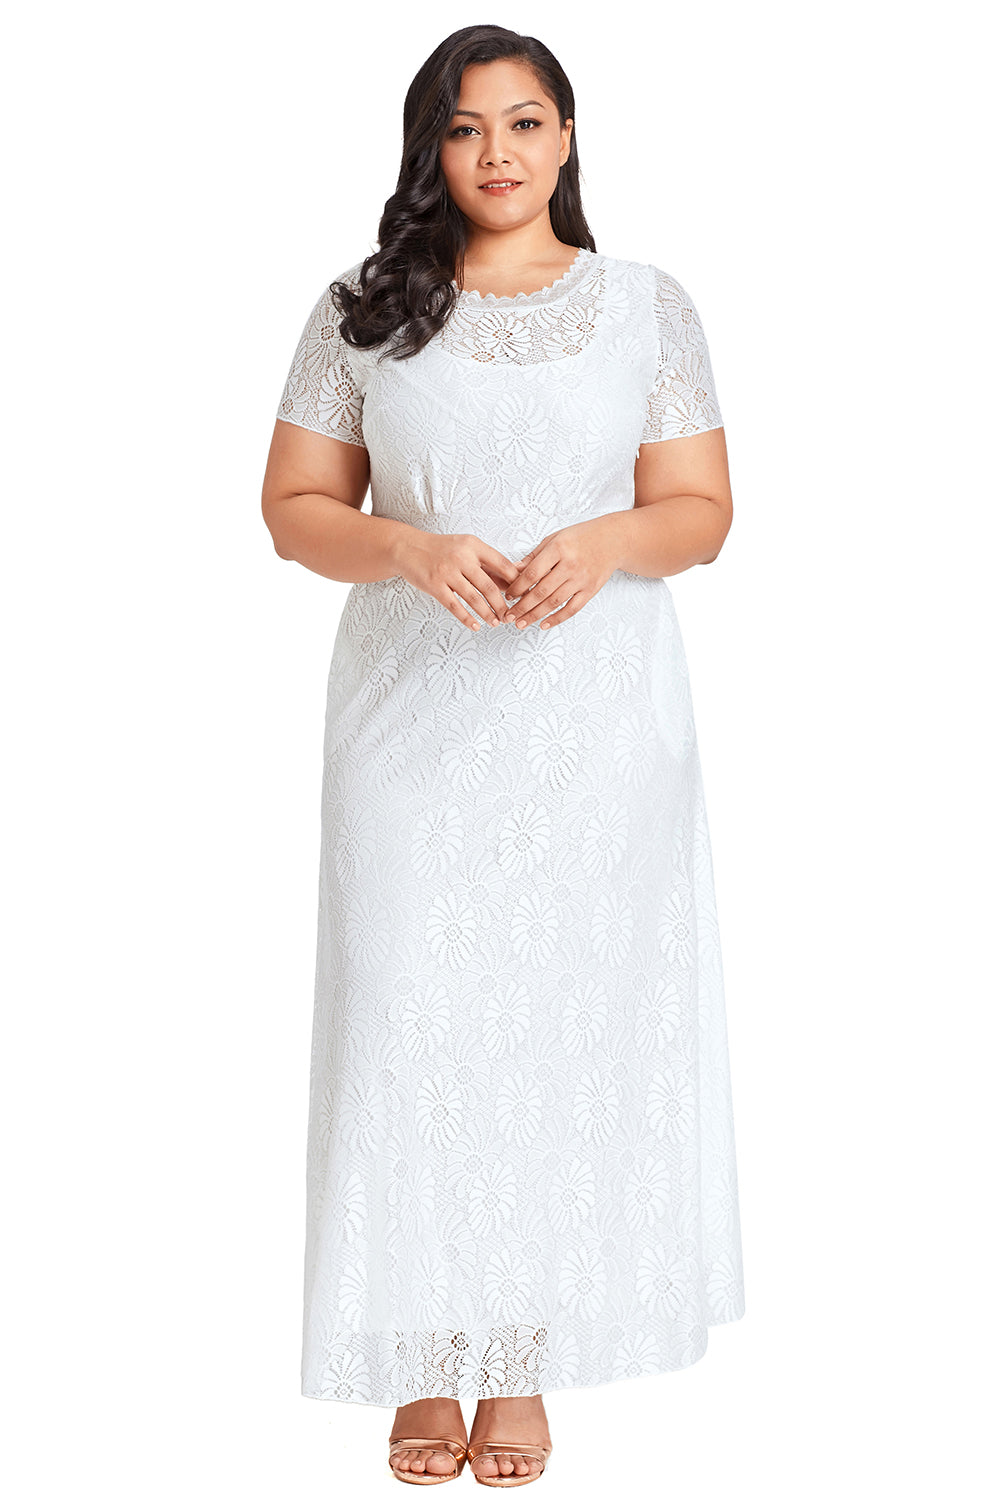 White Plus Size Lace Party Gown LAVELIQ - Laveliqus